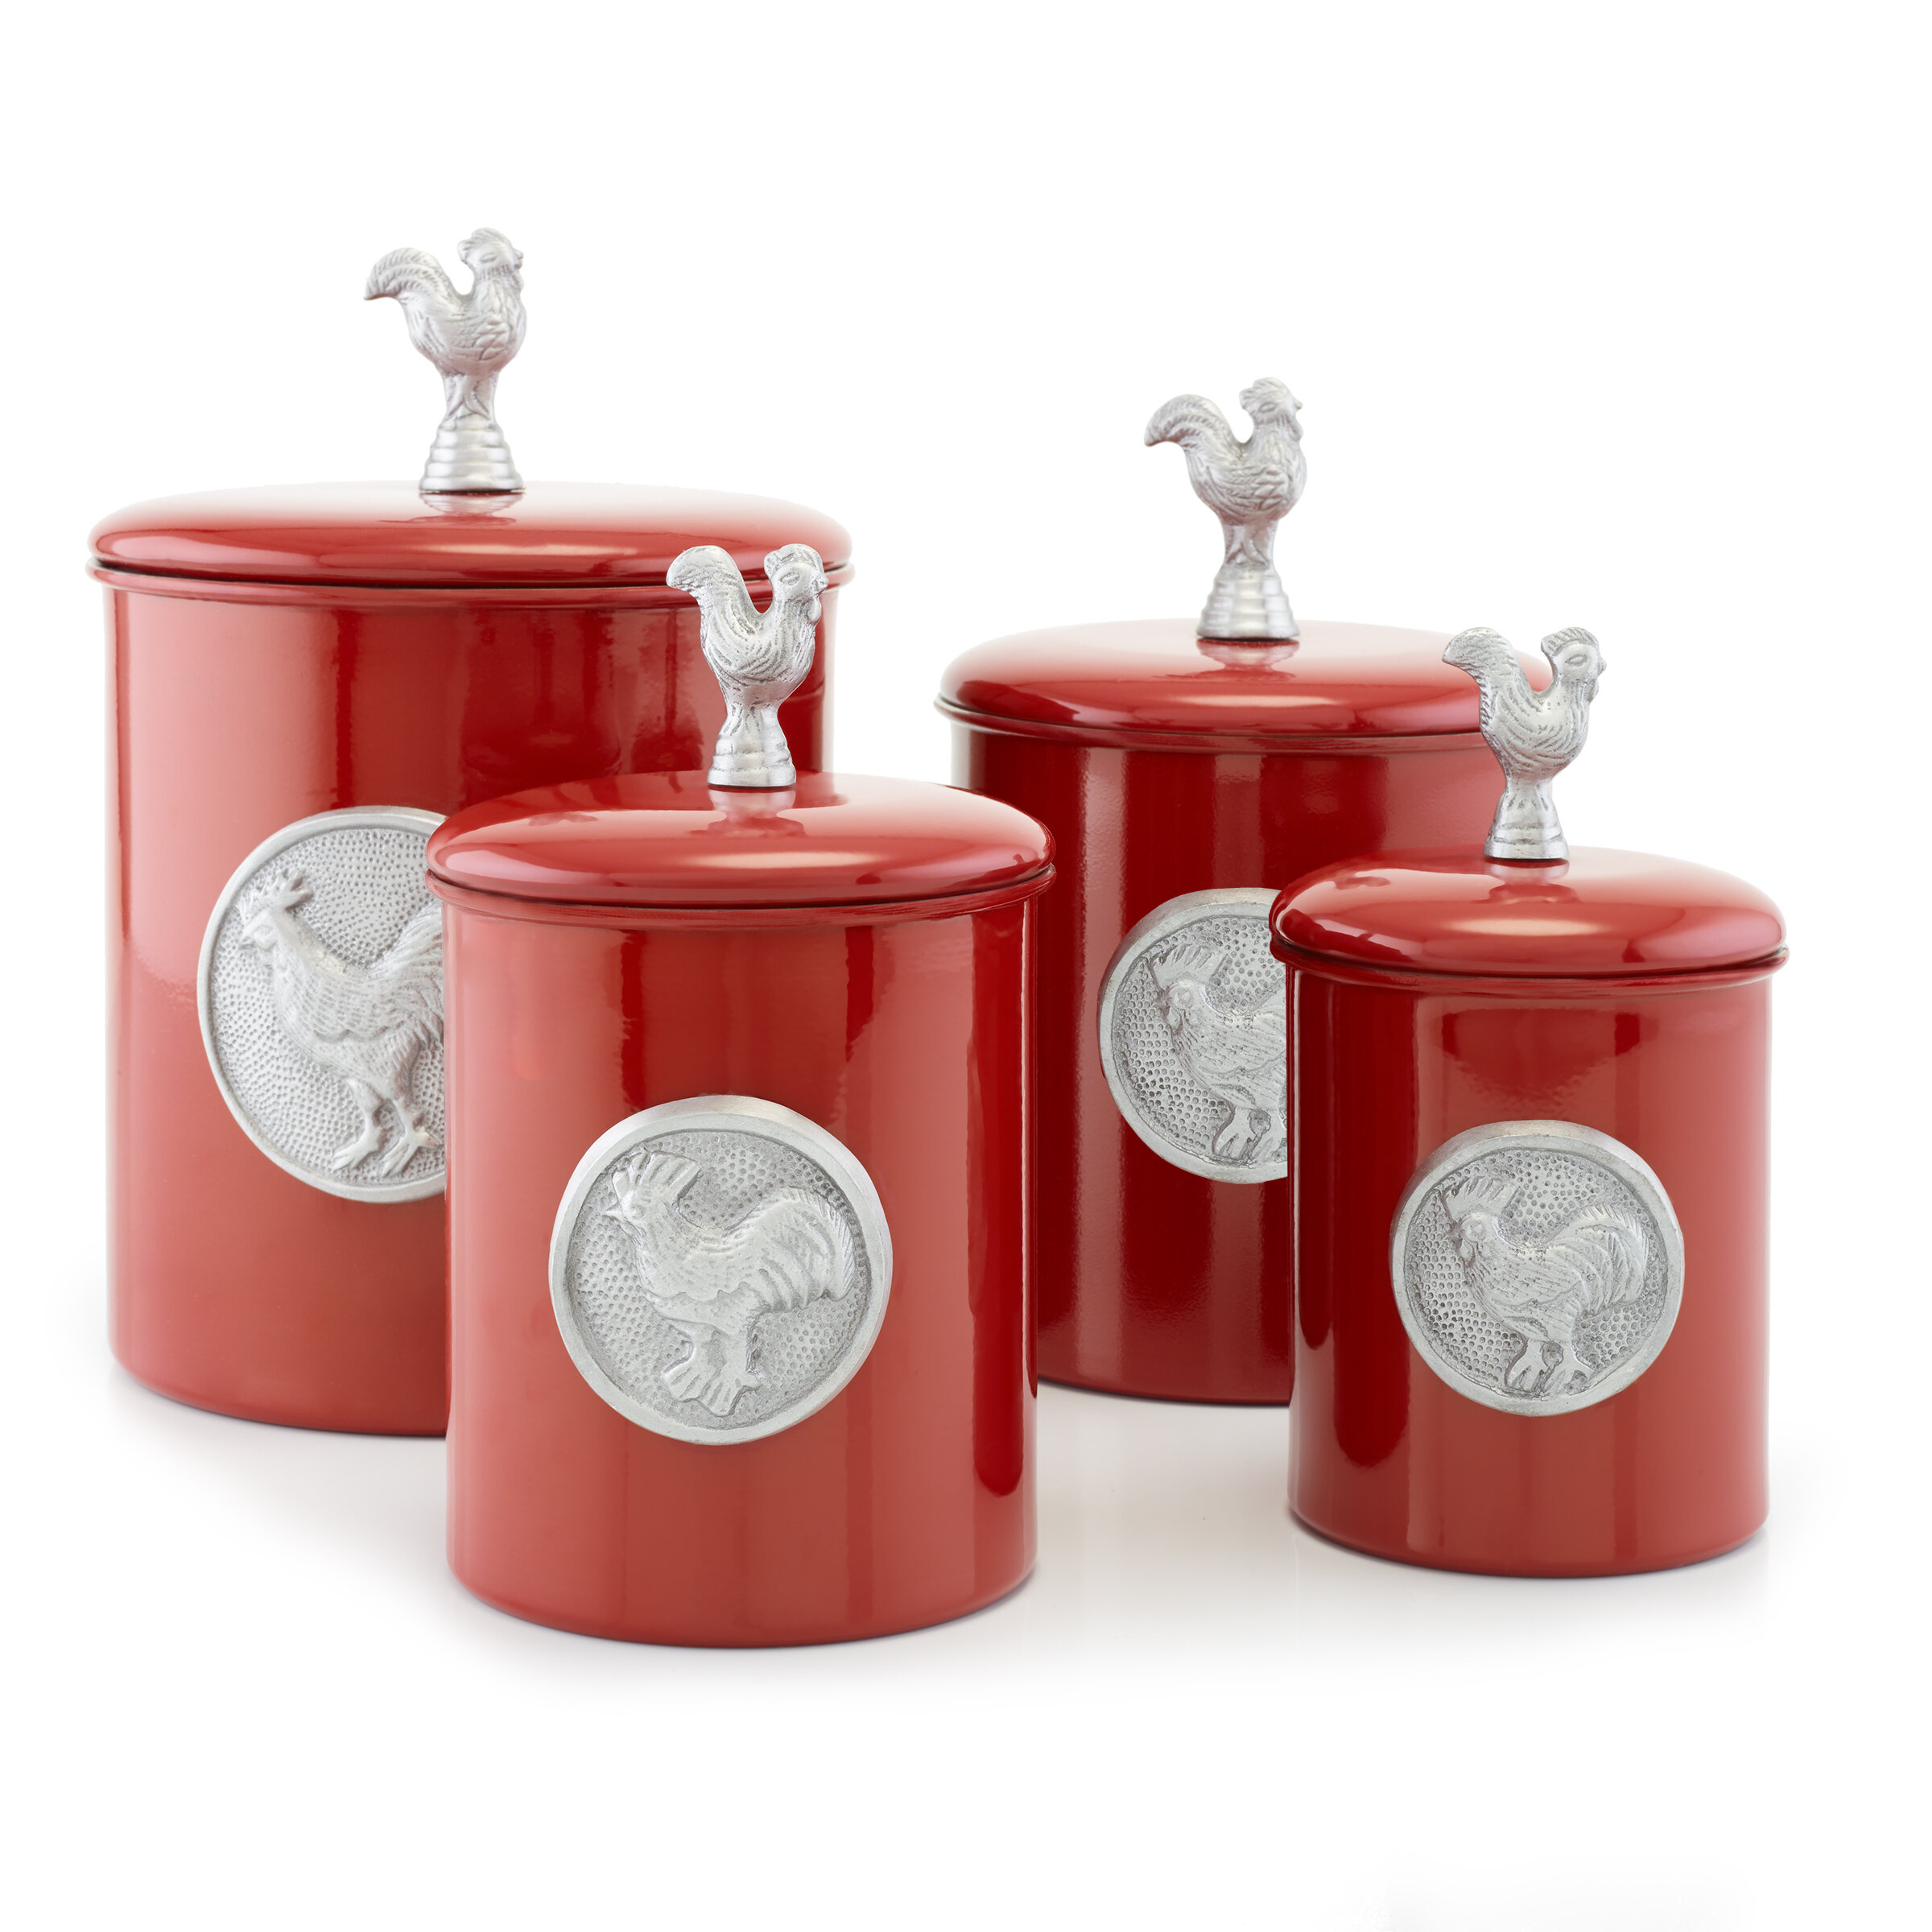 Old Dutch Red Rooster 4 Piece Kitchen Canister Set U0026 Reviews | Wayfair